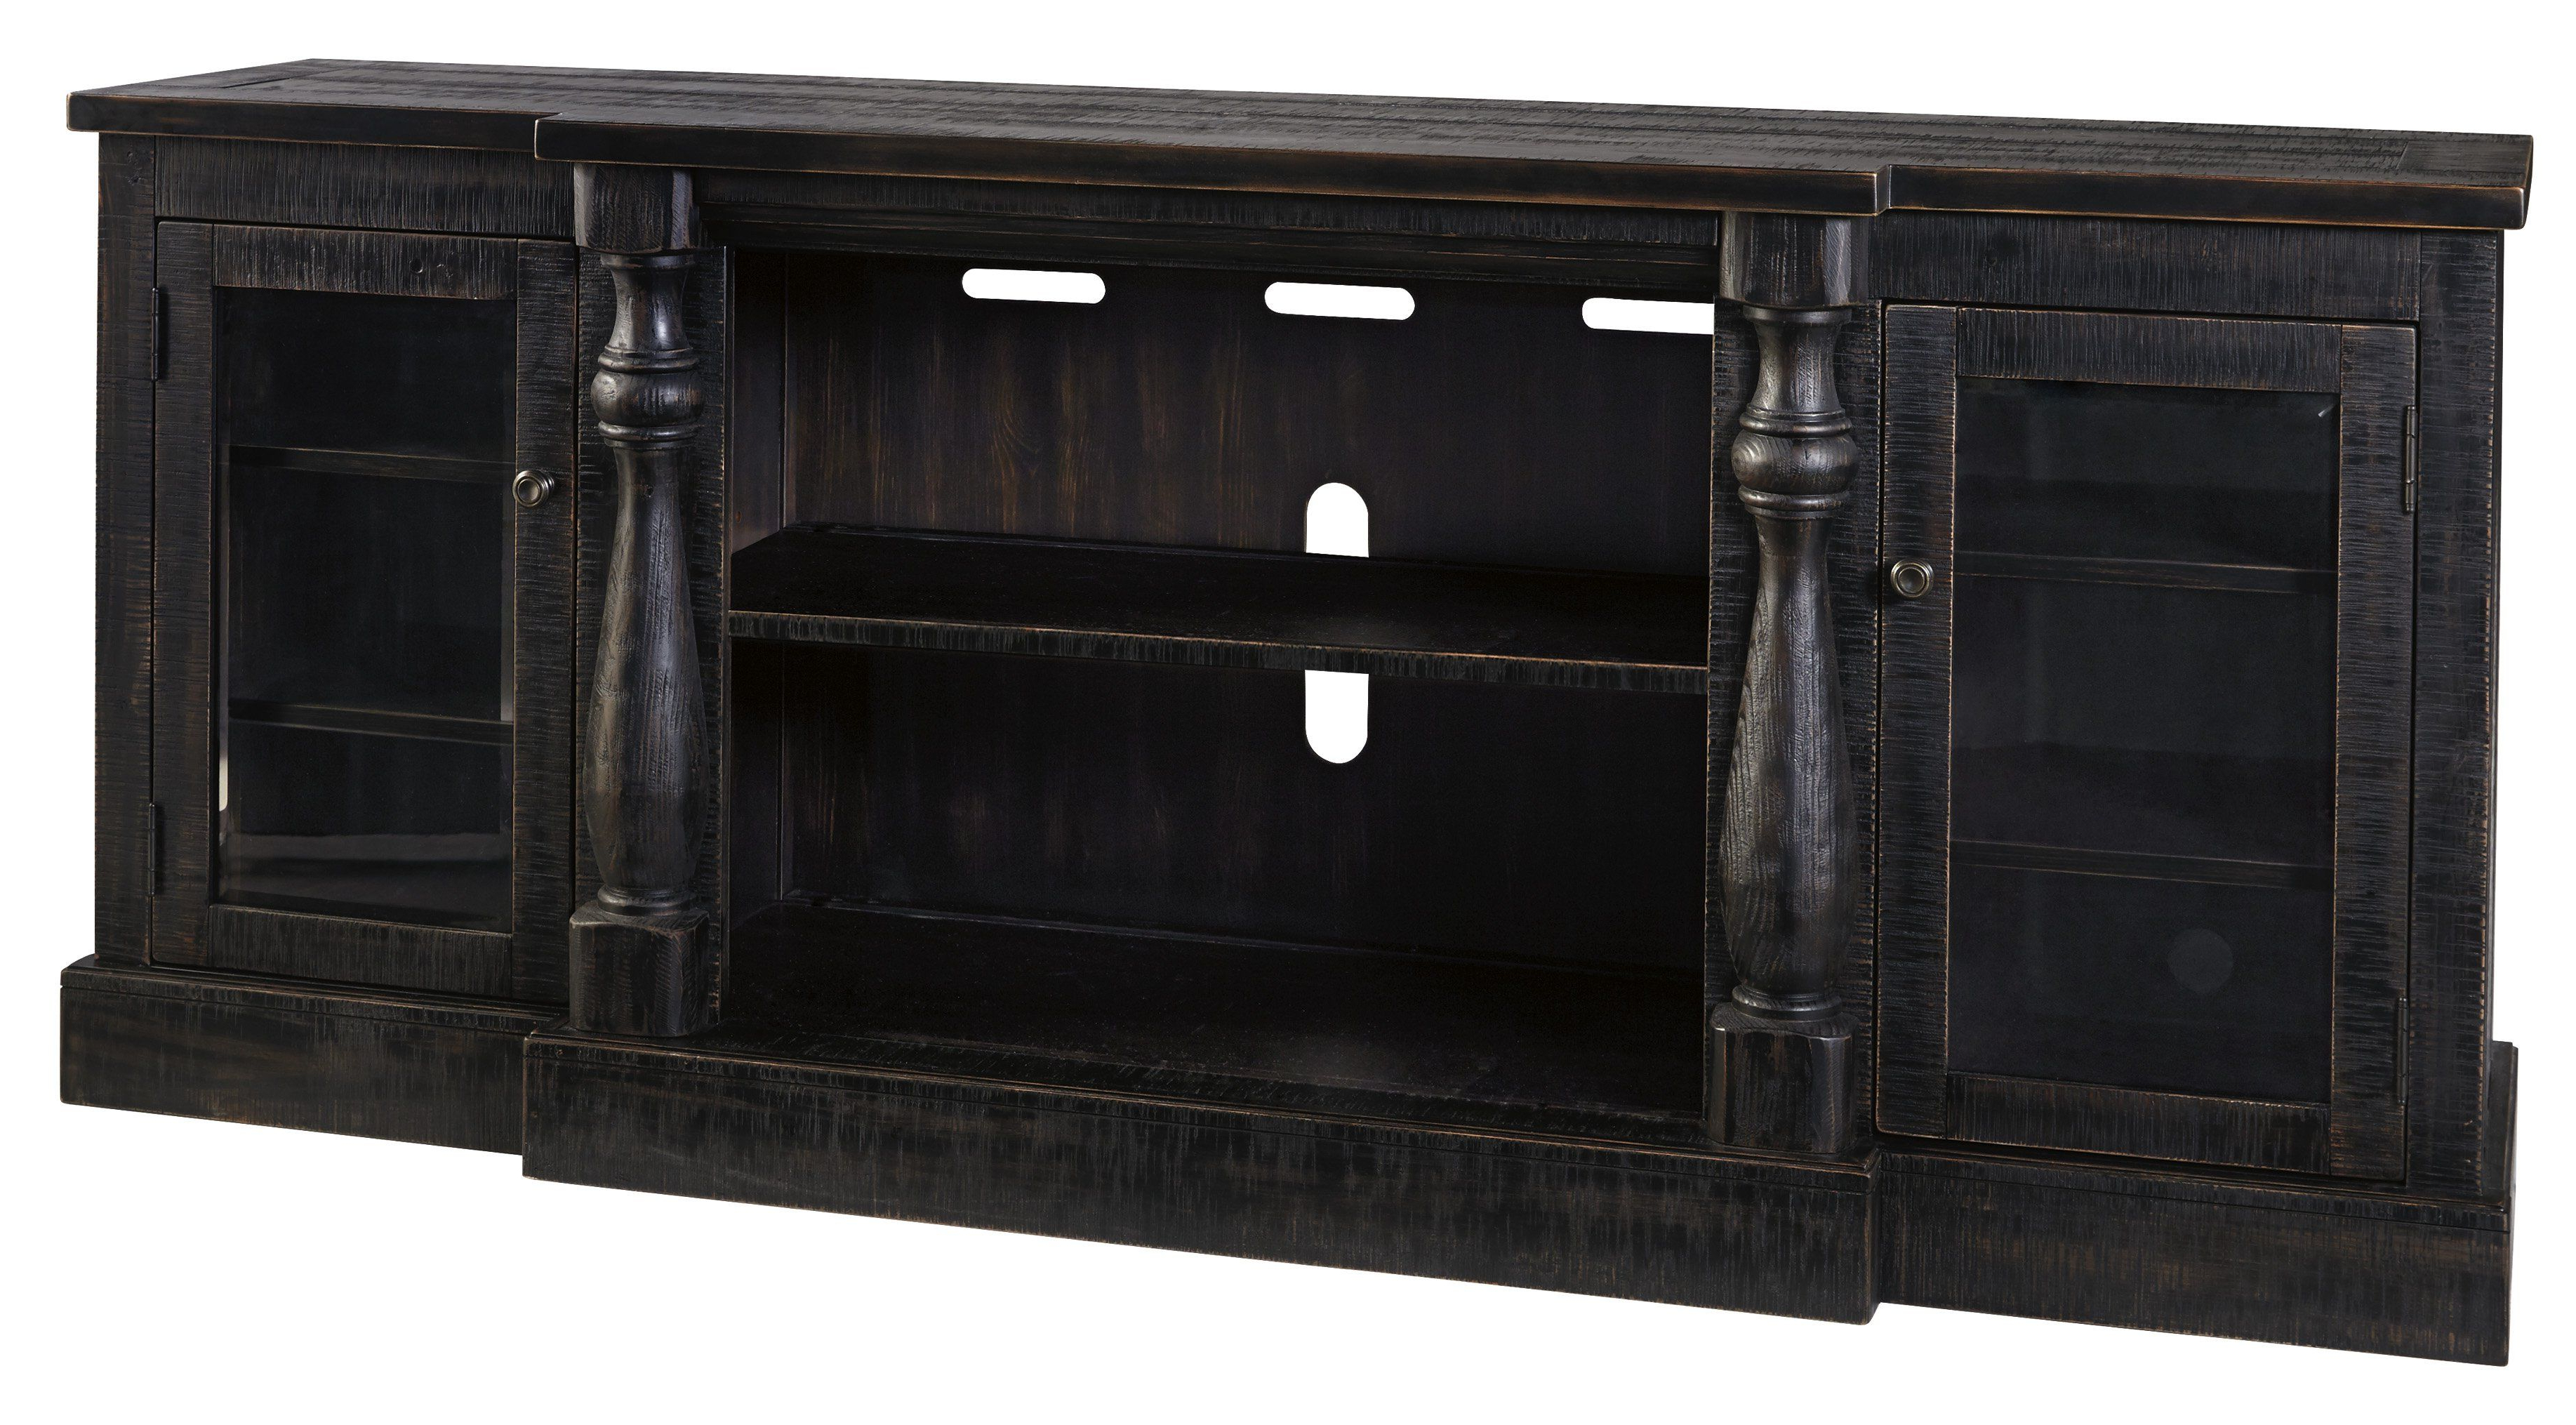 Mallacar Xl Tv Stand | Products | Pinterest | Fireplace Tv Stand In Wakefield 97 Inch Tv Stands (View 2 of 20)